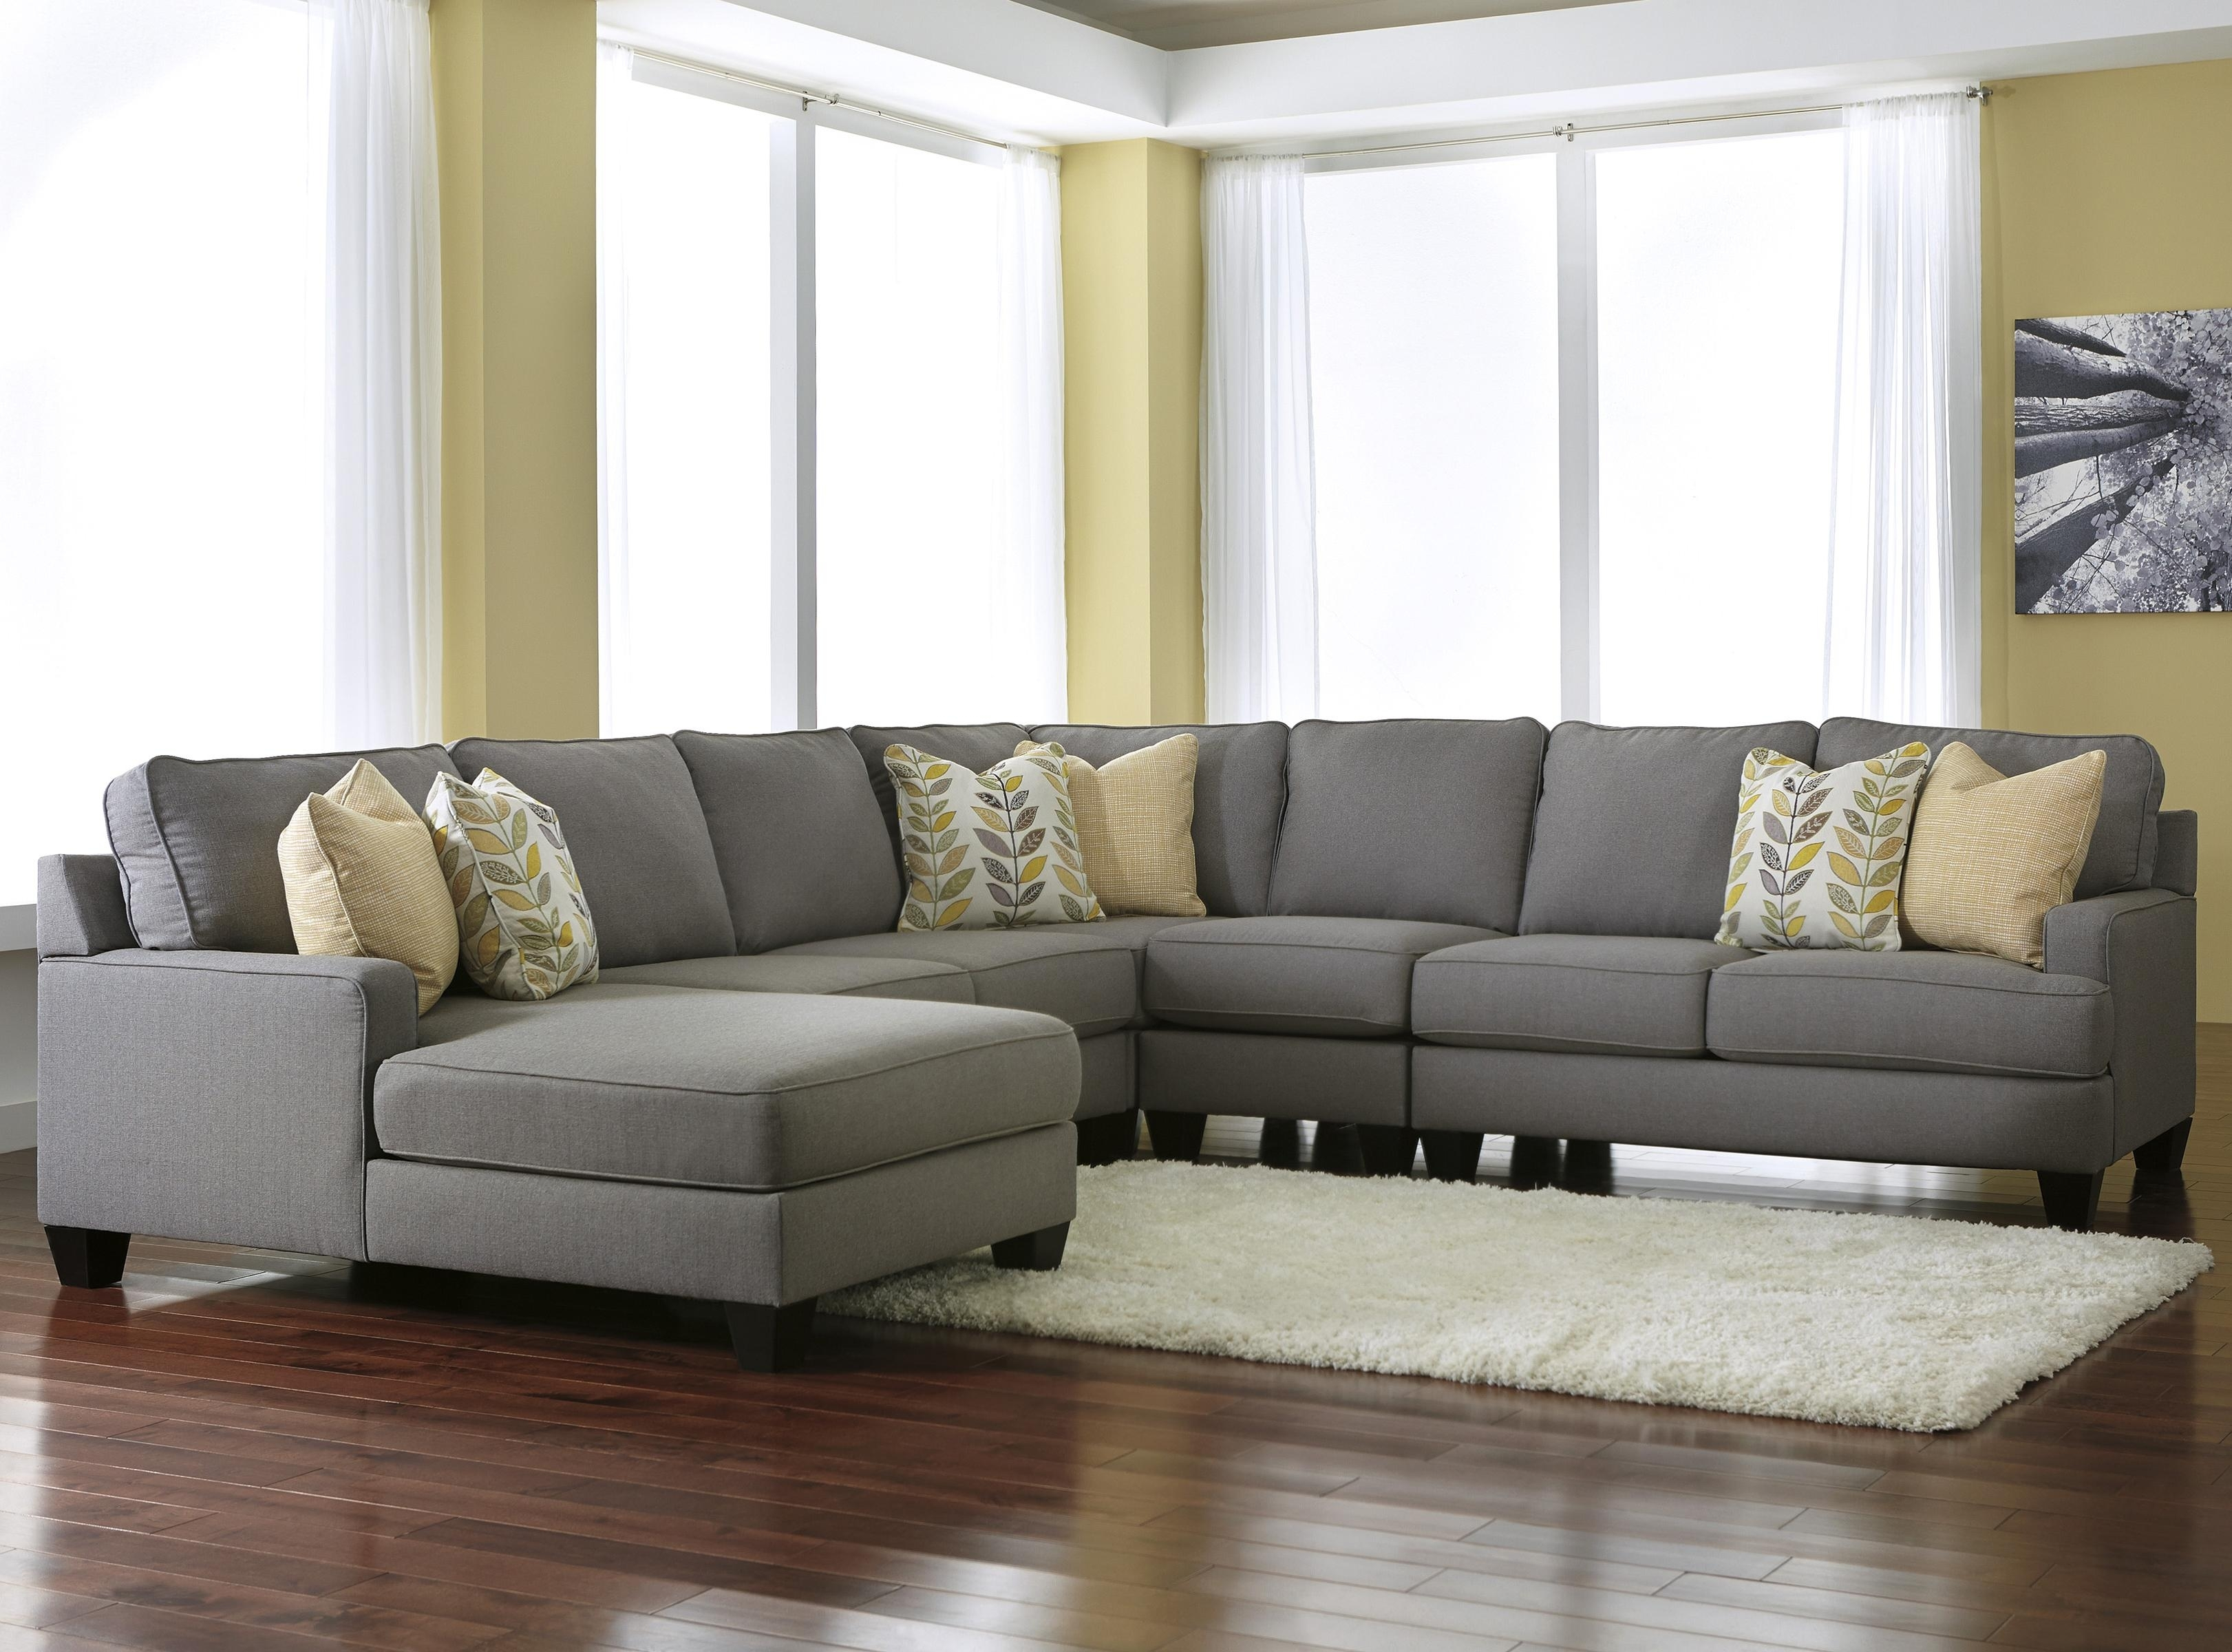 Modern 5 Piece Sectional Sofa With Left Chaise & Reversible Seat For Lancaster Pa Sectional Sofas (Image 8 of 10)